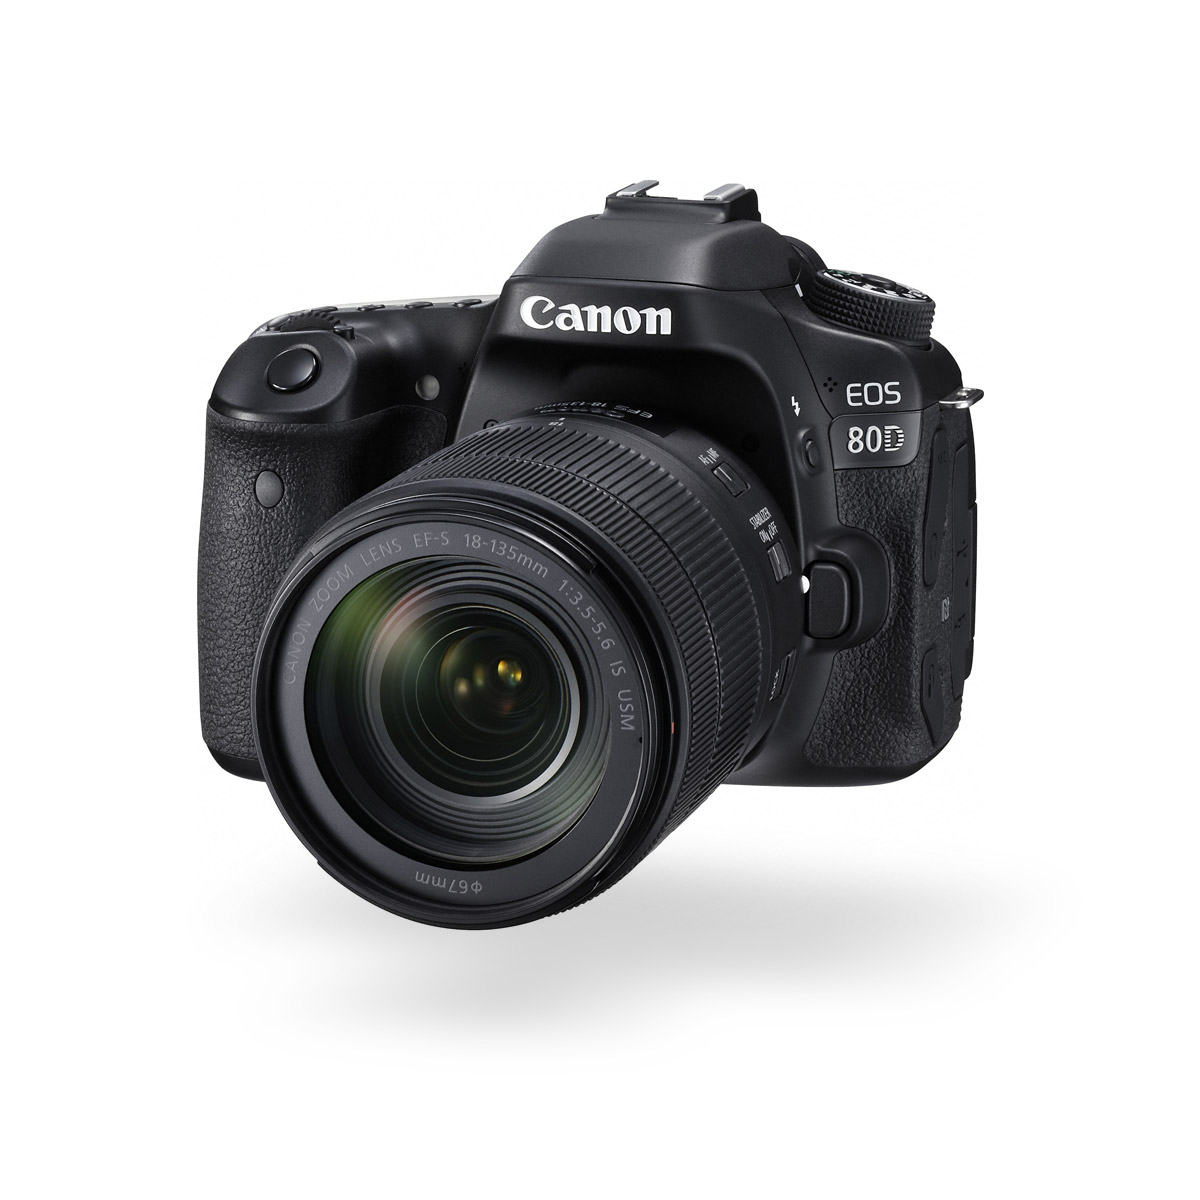 Camera Accessories Camera Dslr Canon dslr cameras take your creativity further with canon eos range new zealand